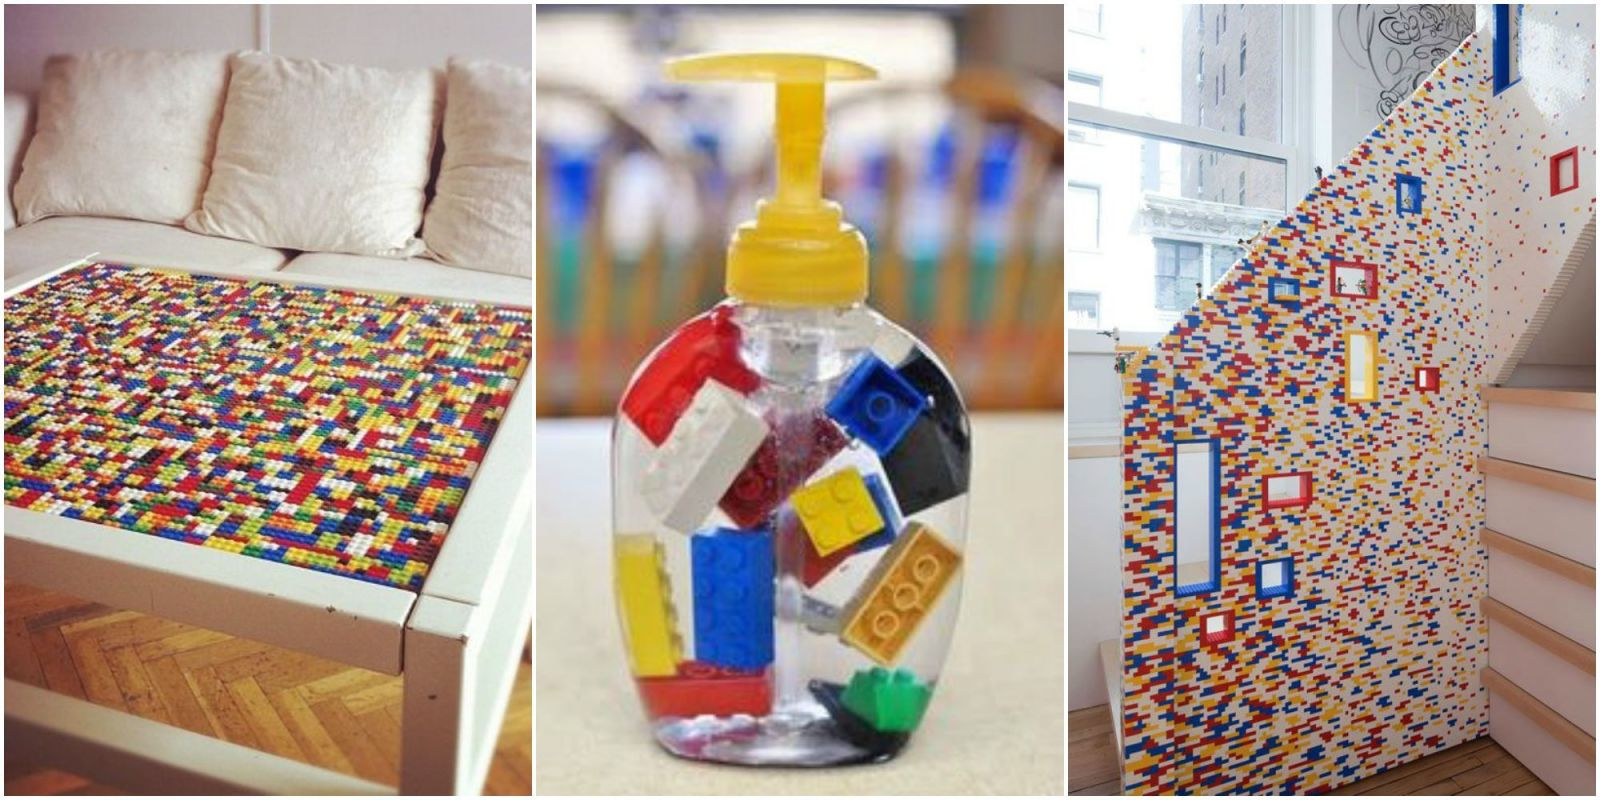 People Decorating how to decorate with legos - new uses for legos